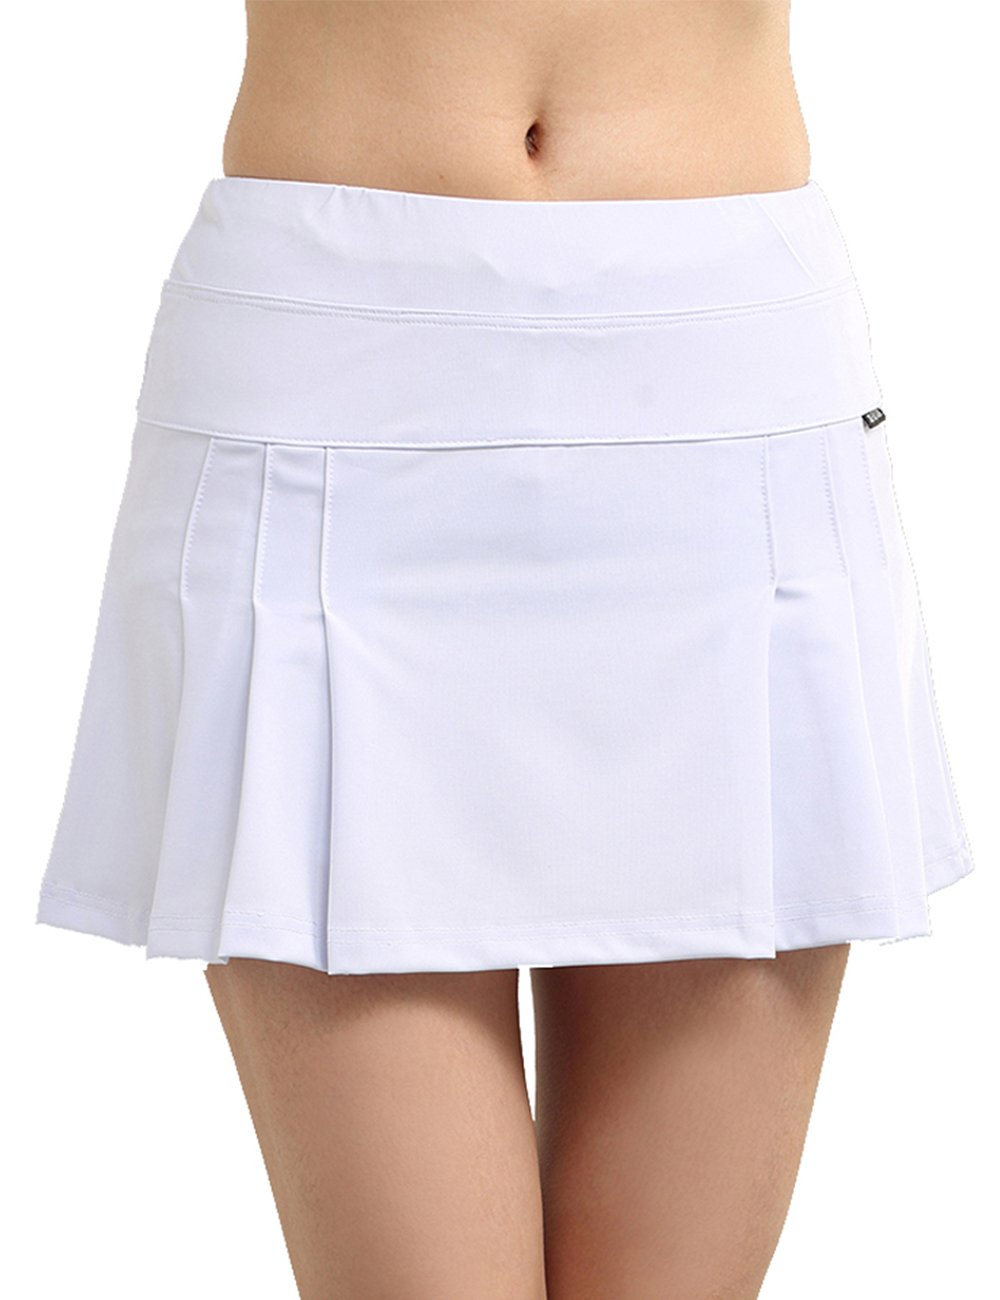 Fitnestyle Women's Running Skorts Active Athletic Skorts with Pocket for Running Tennis Golf